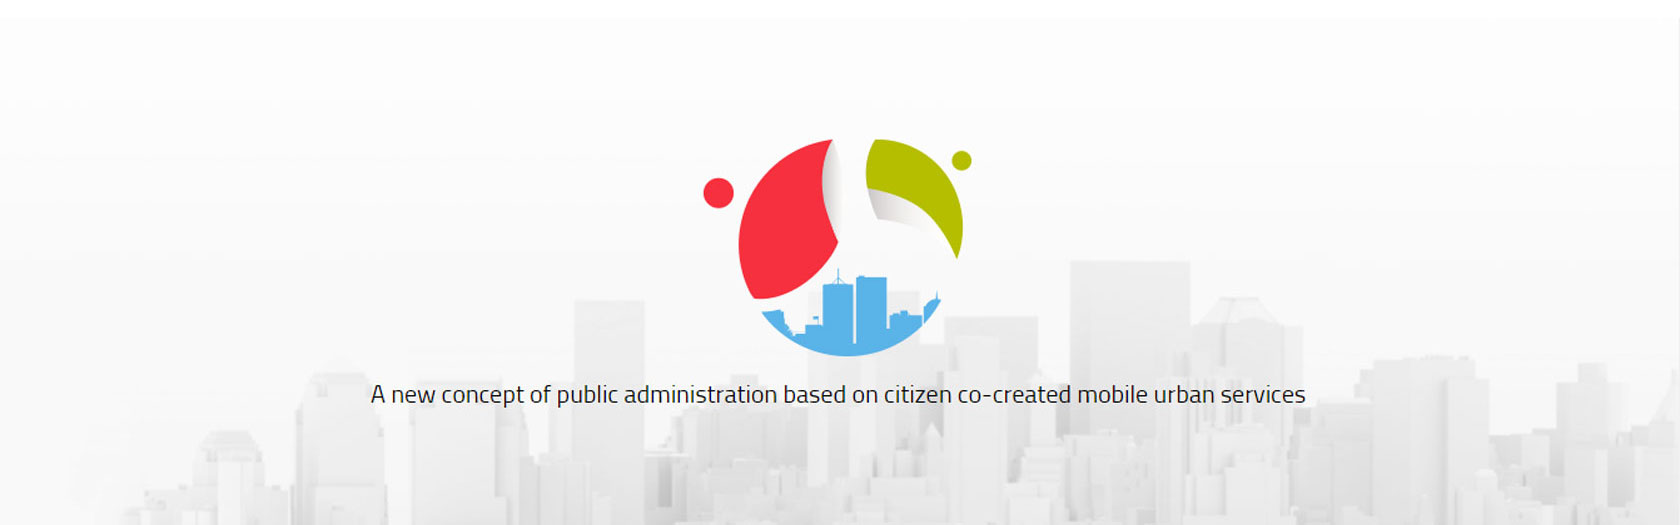 WeLive: open and collaborative government solutions